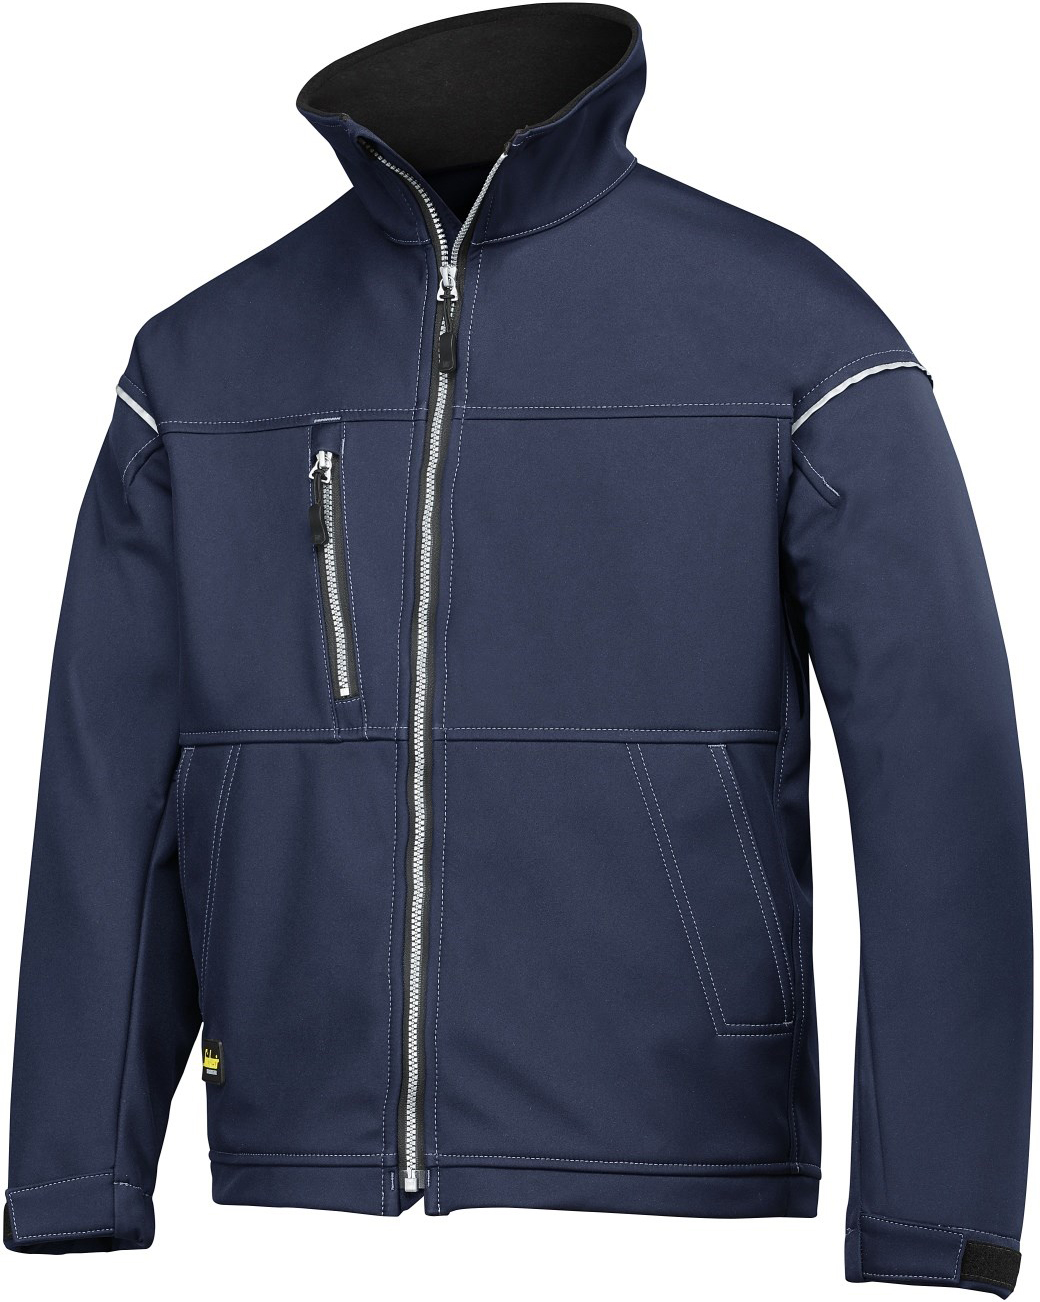 Snickers 12119500007 Jacket XL R Navy